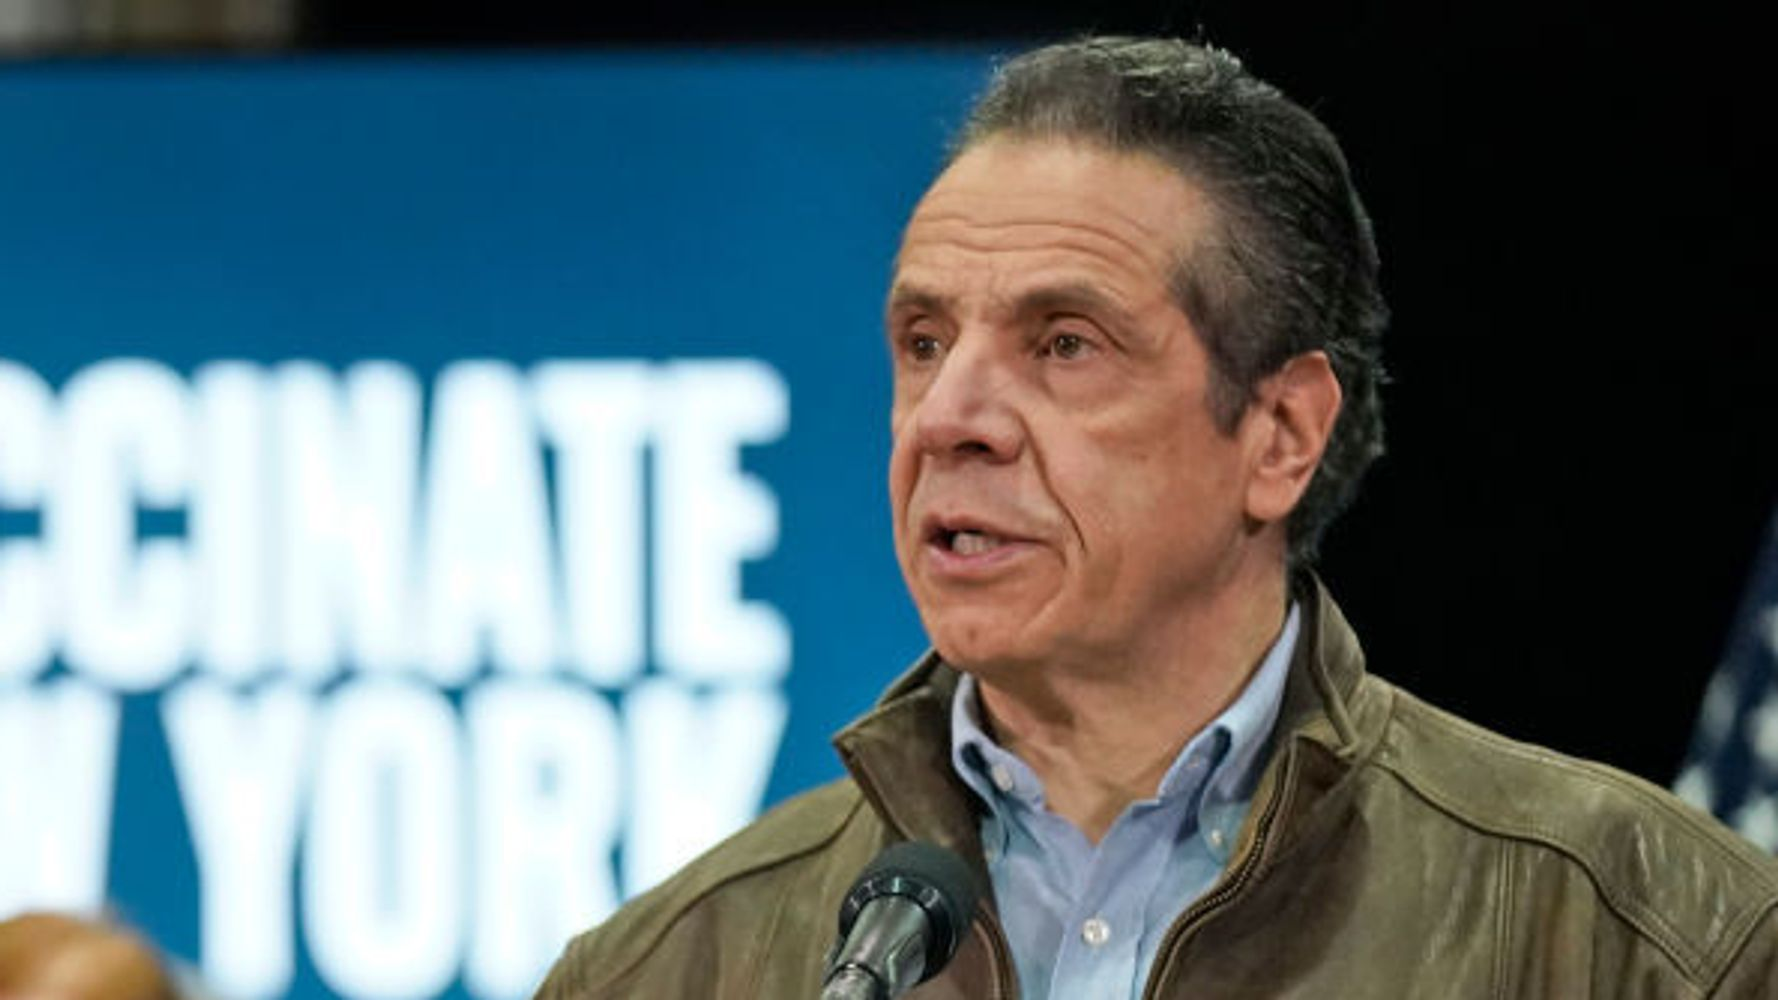 Top Cuomo Aides Altered COVID-19 Data To Lower New York Nursing Home Deaths: Reports